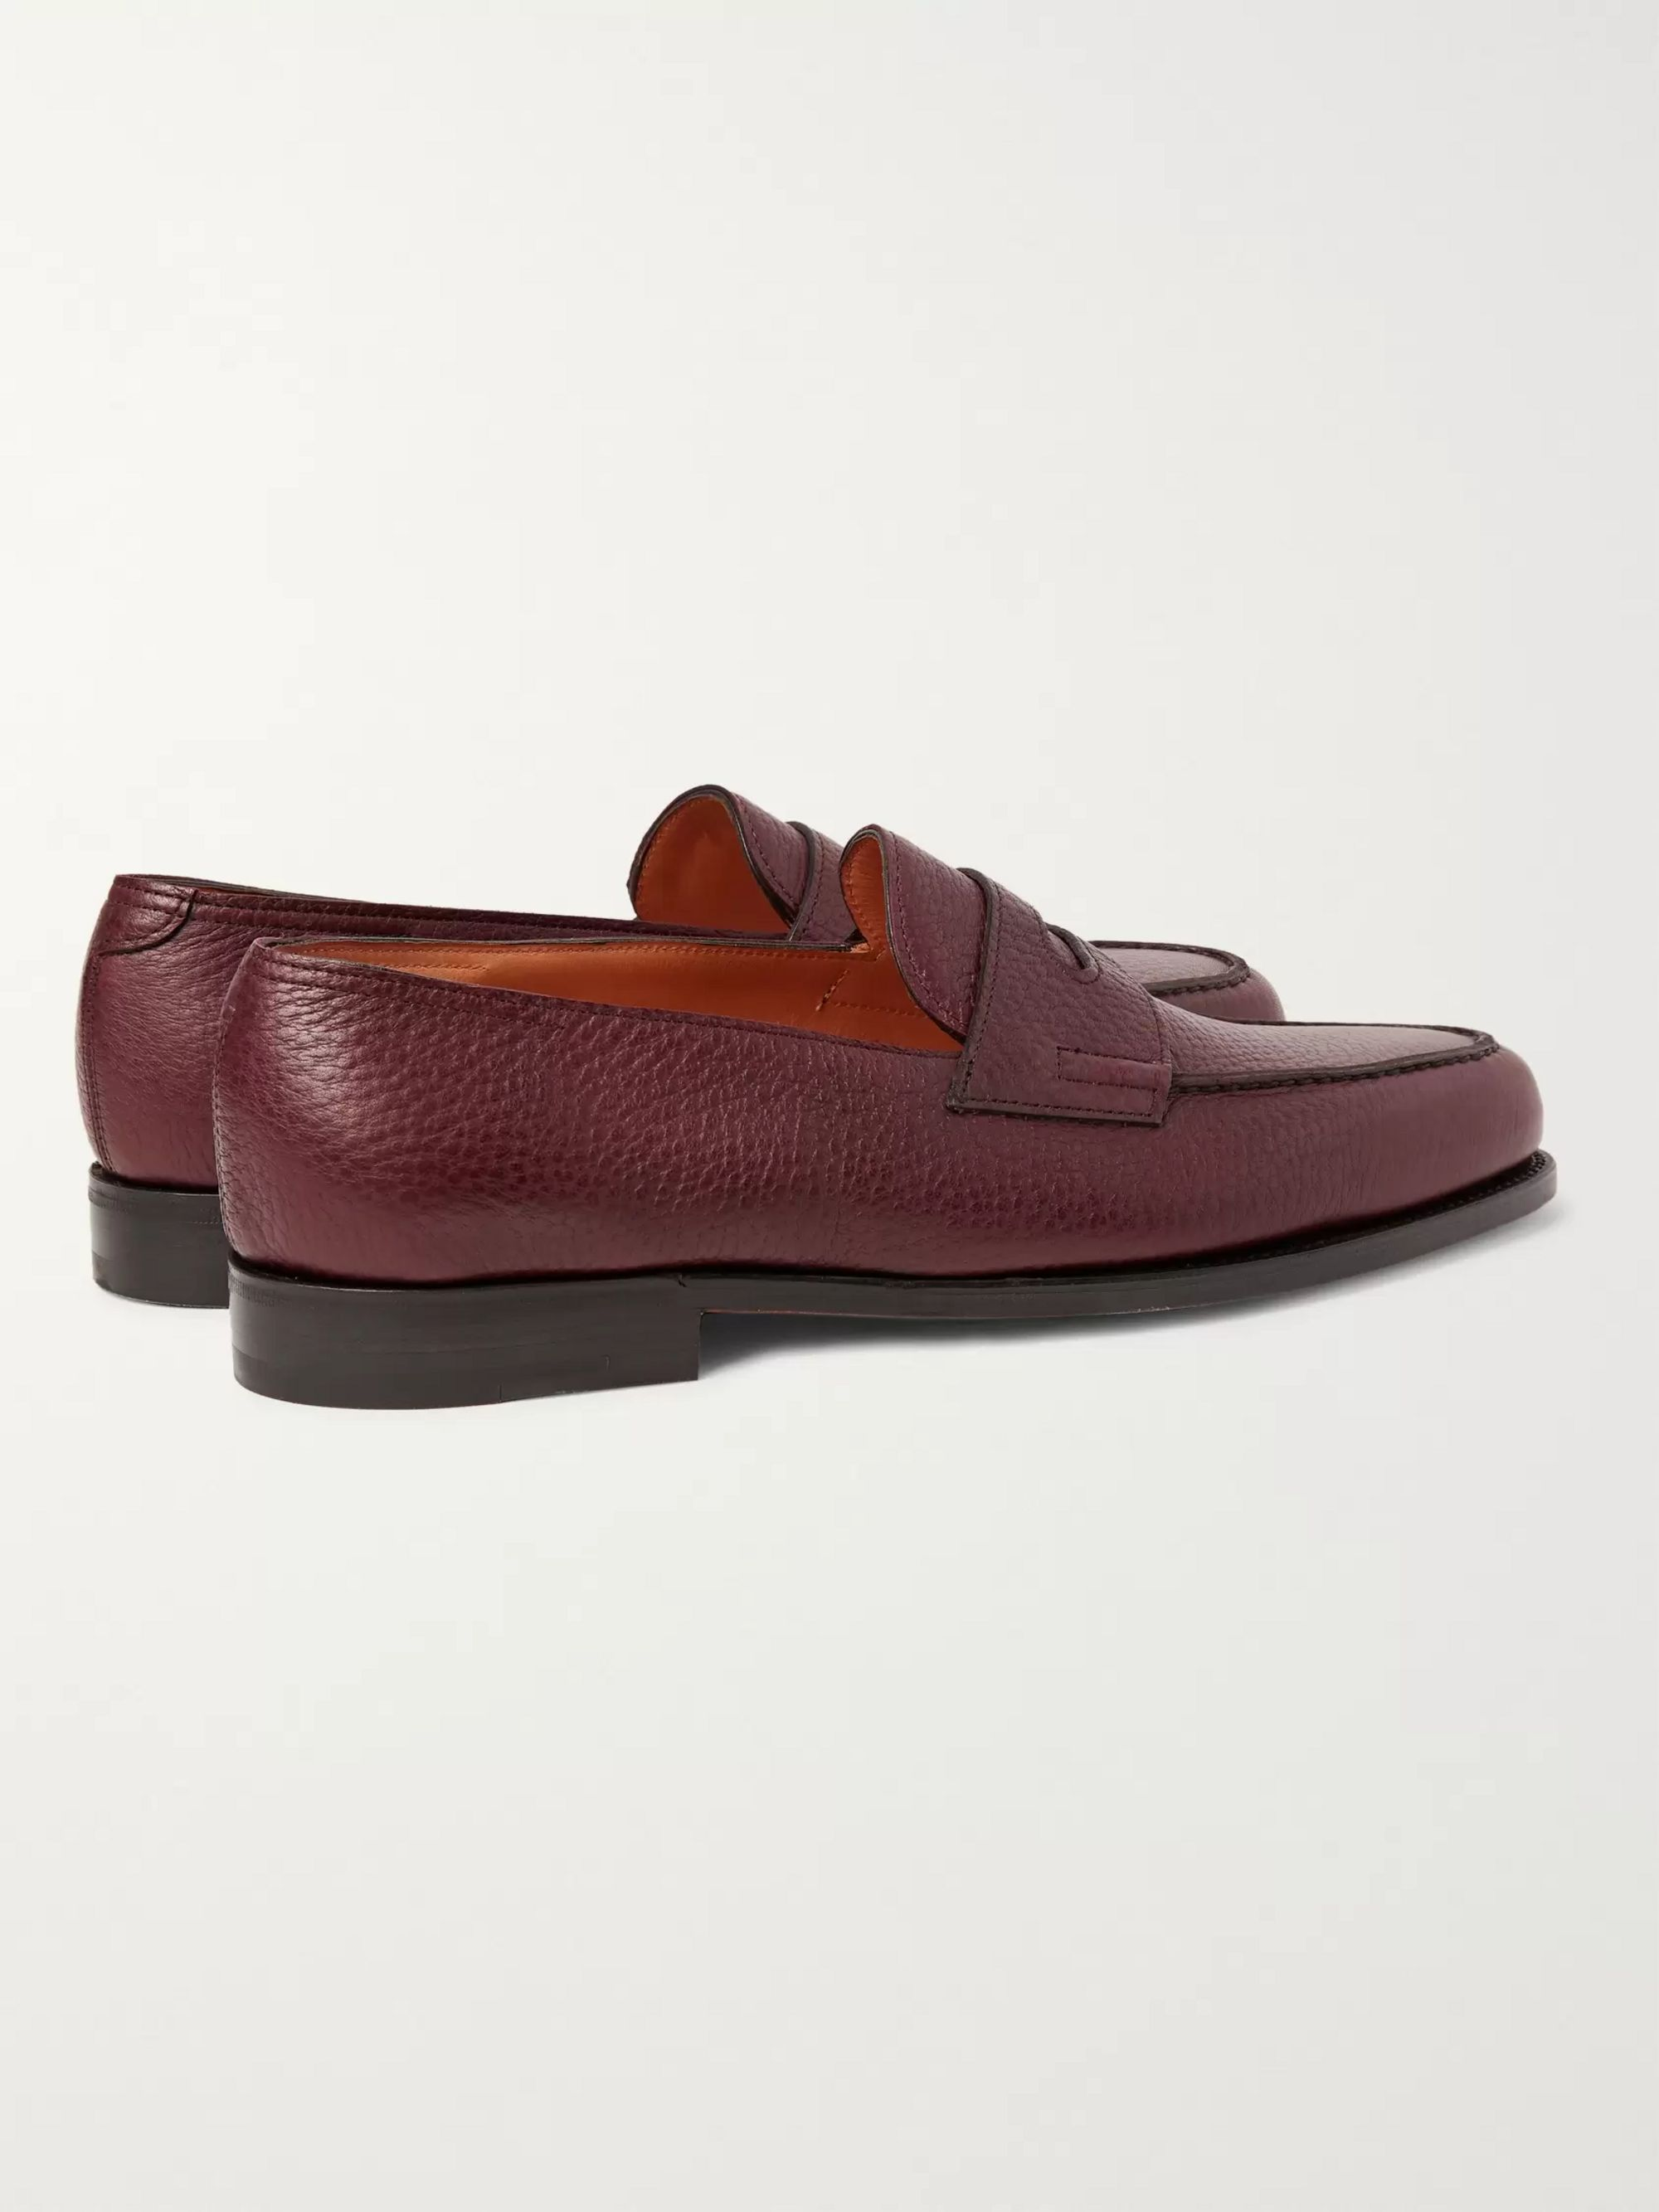 John Lobb Lopez Full-Grain Leather Penny Loafers